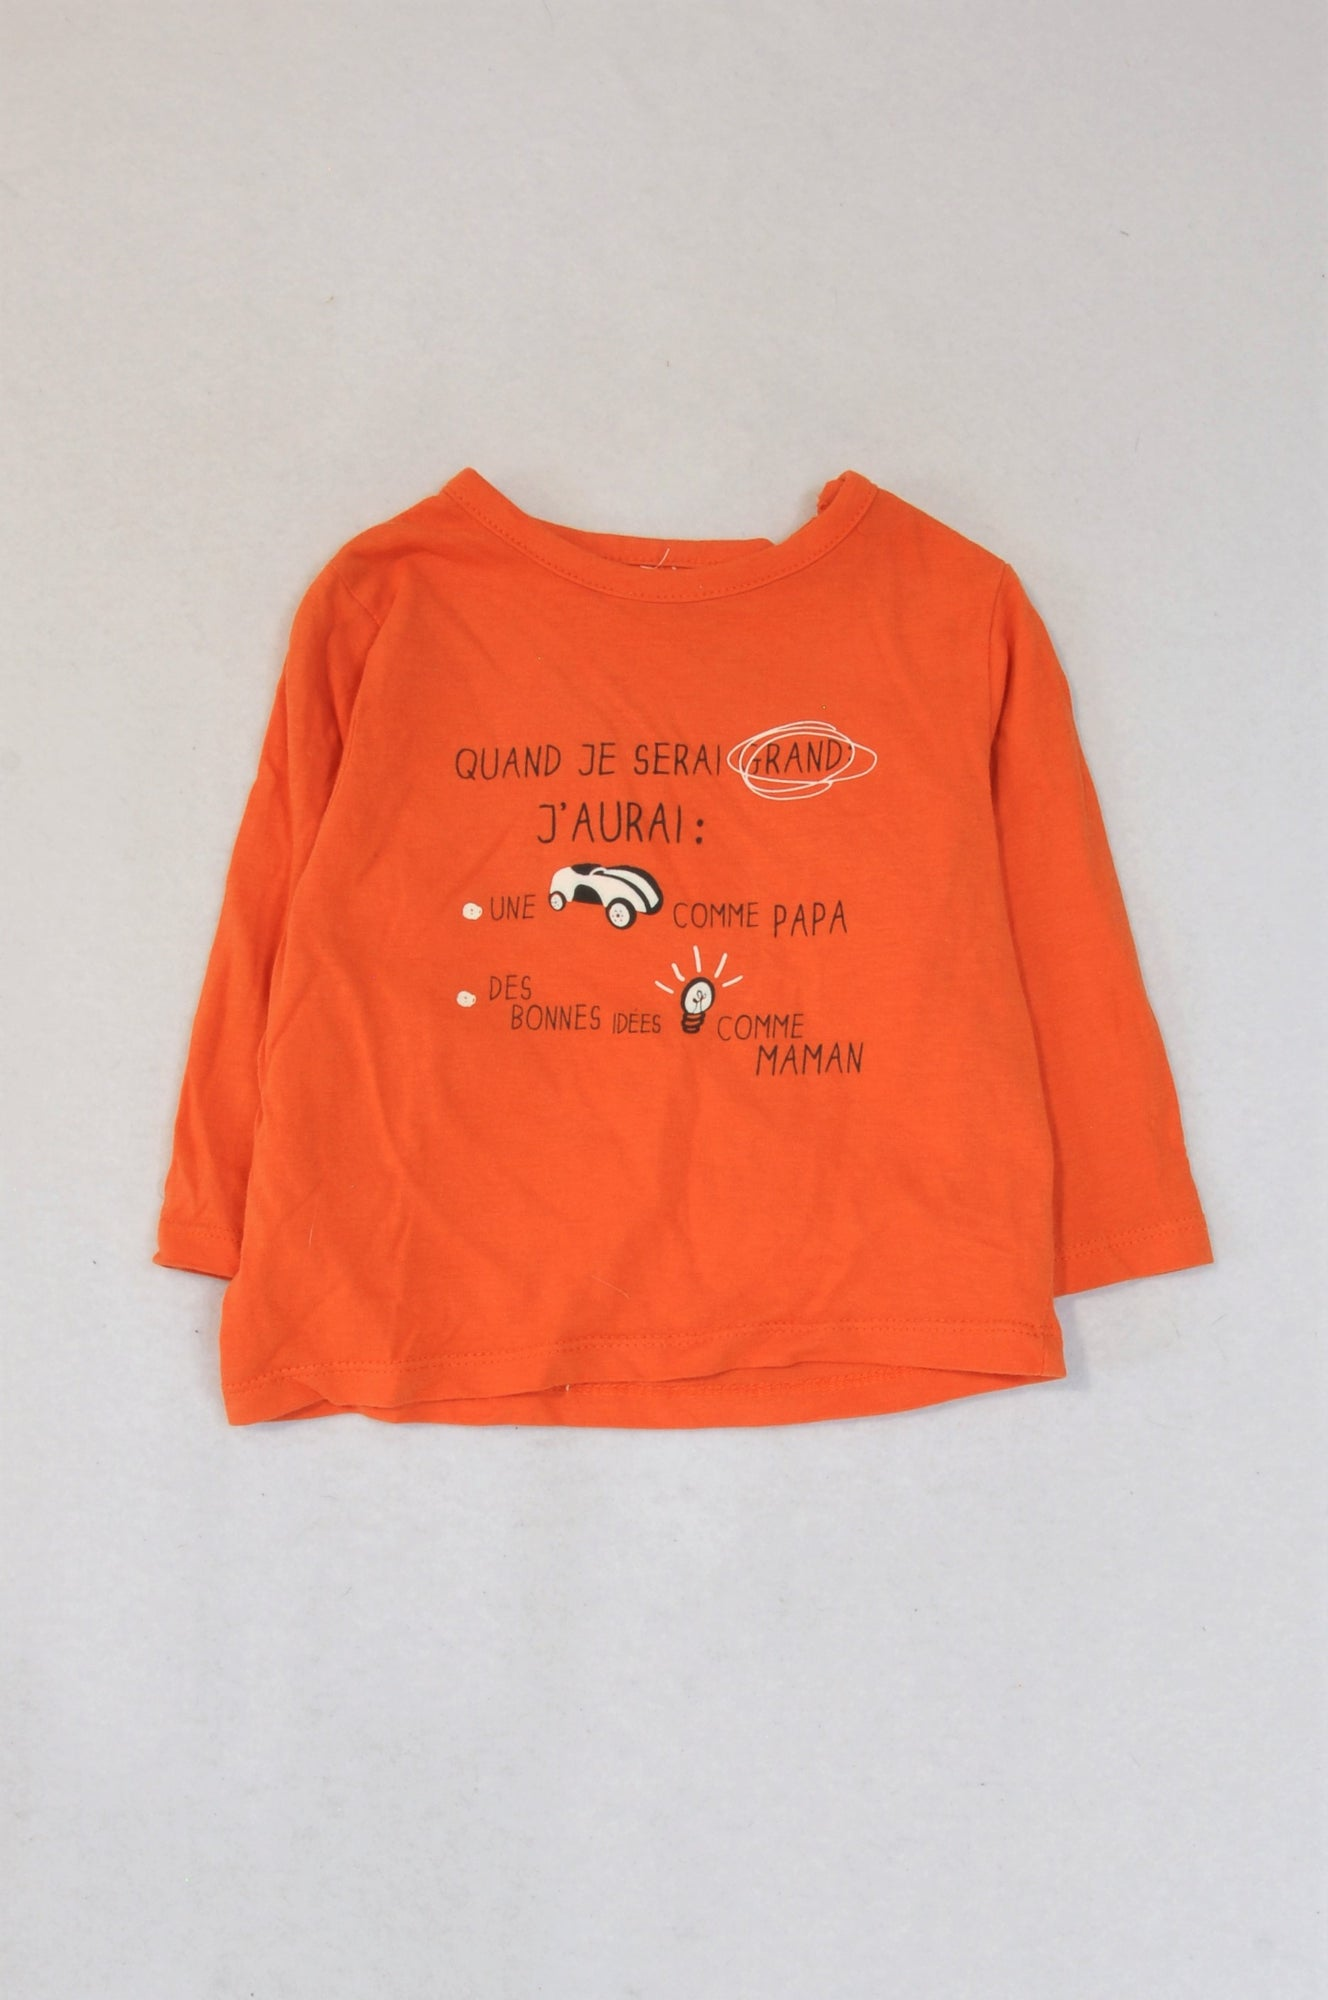 Unbranded Orange Quand Je Serai Grand Long Sleeve T-shirt Boys 0-3 months